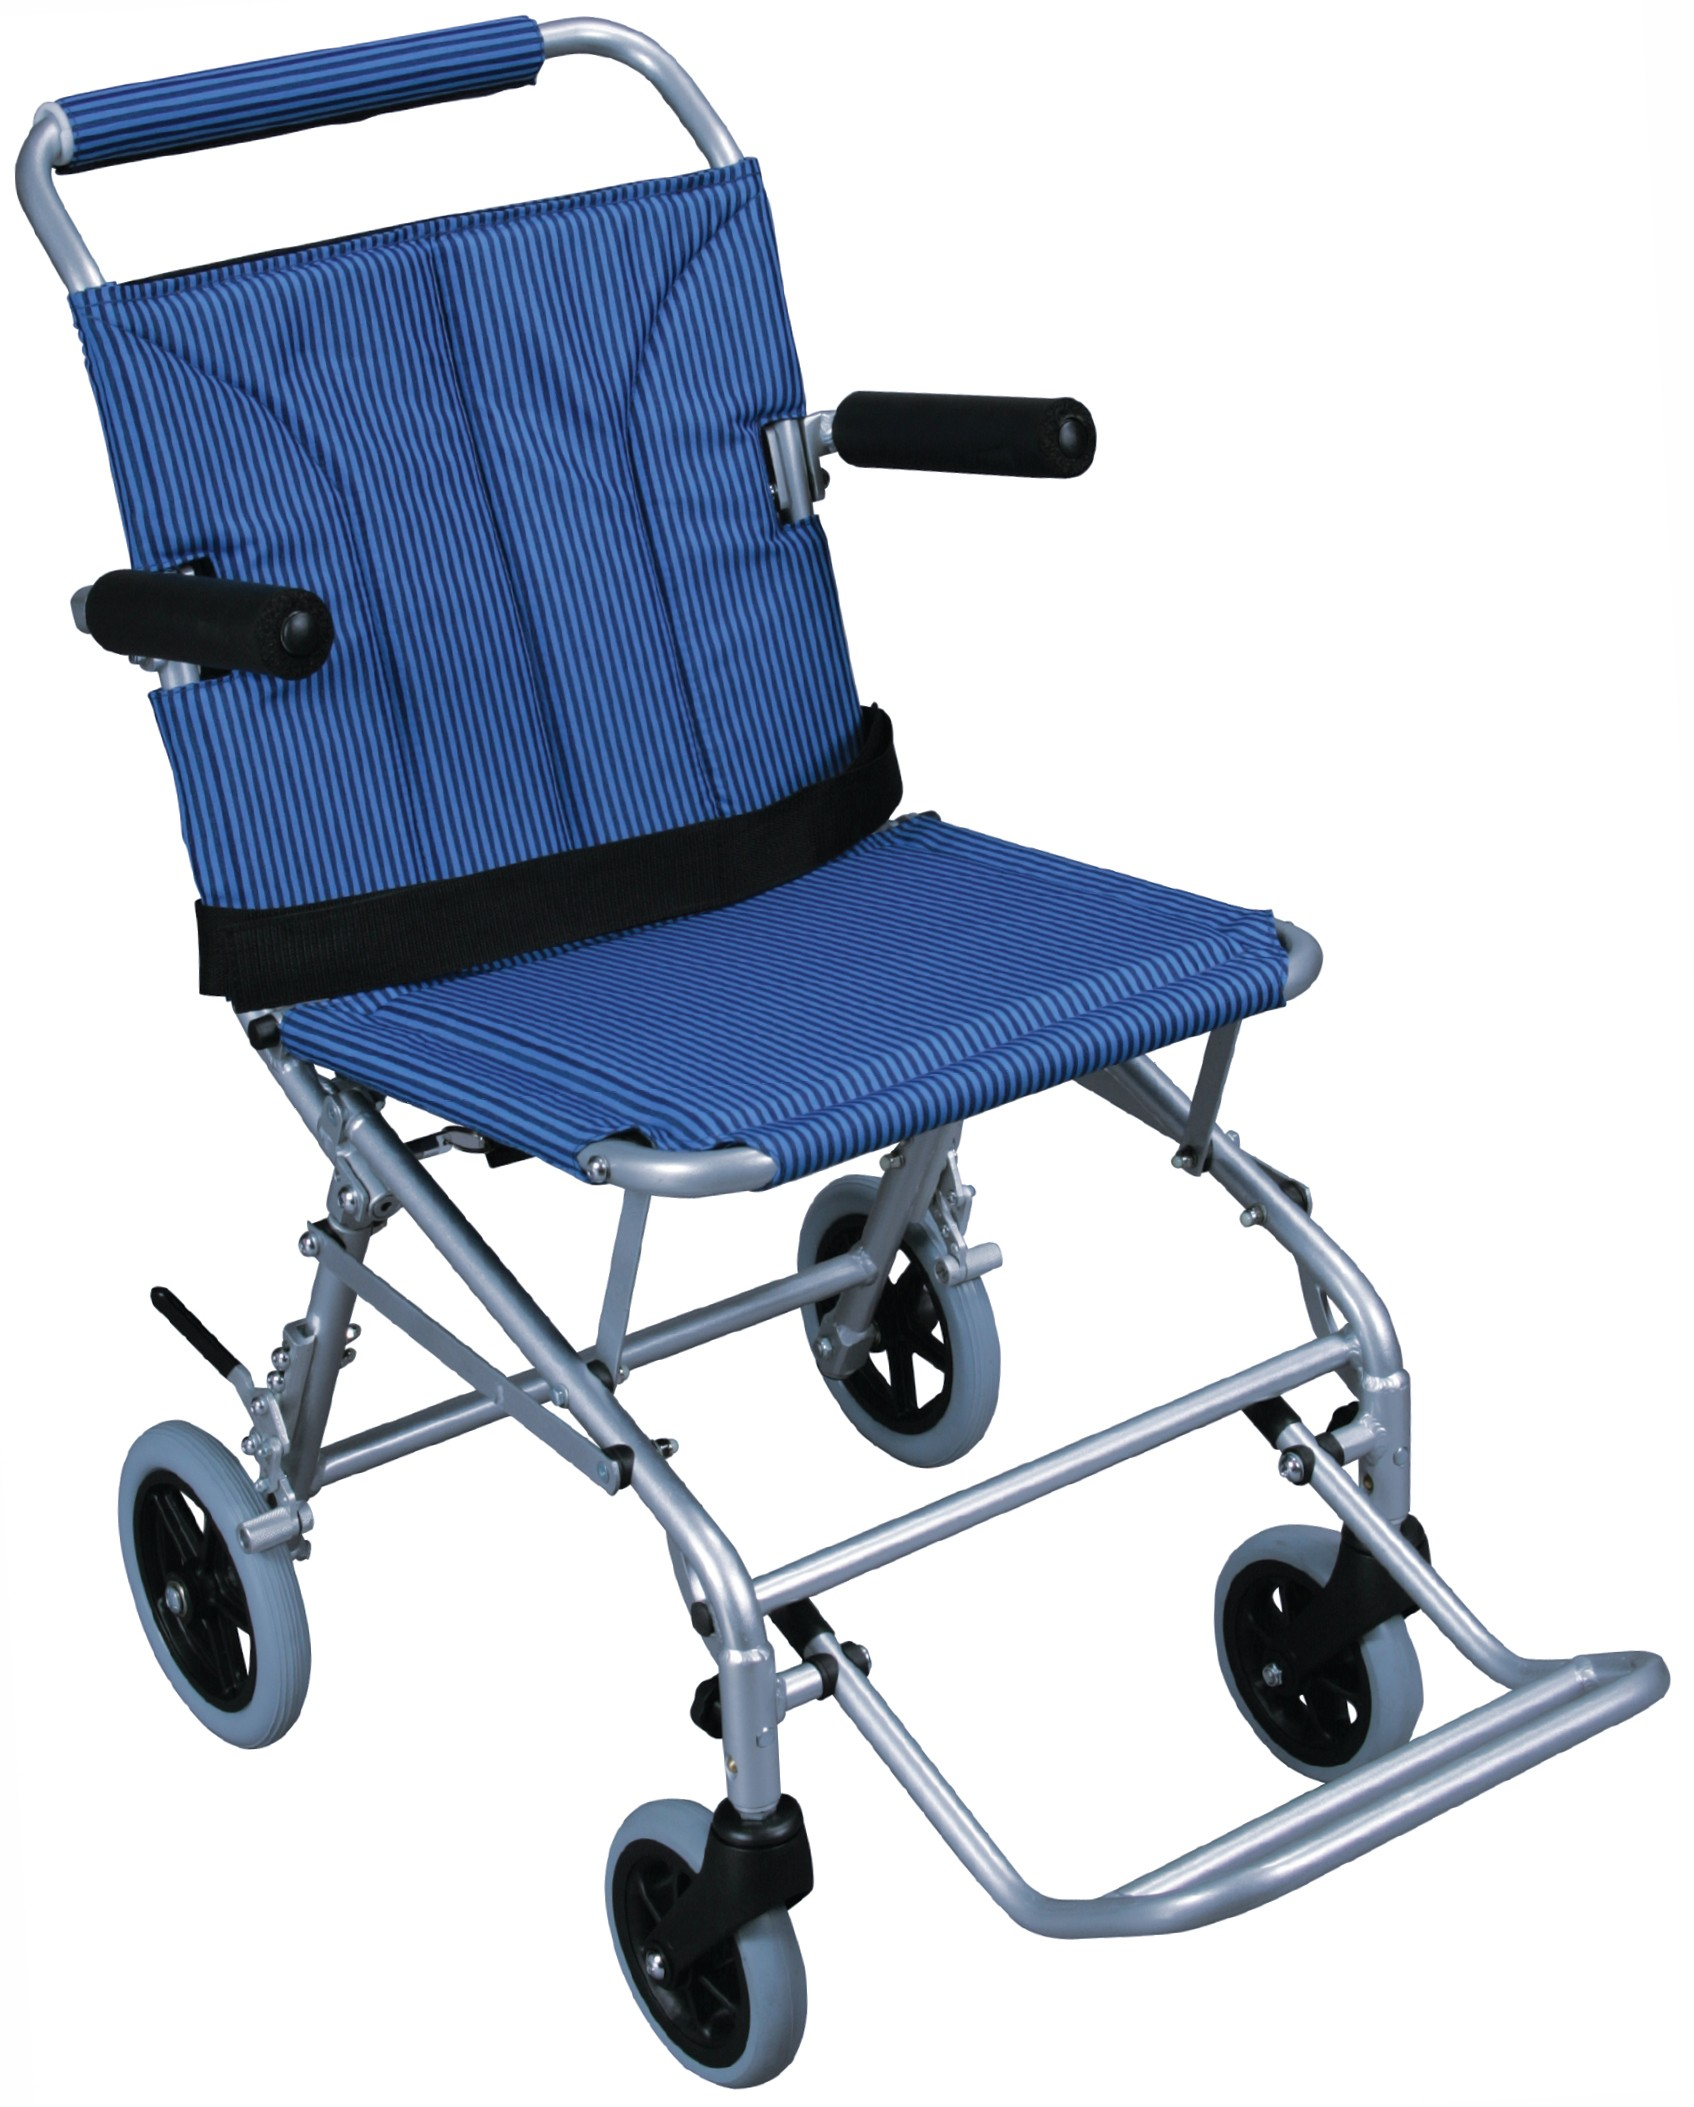 bariatric transport chair 24 seat bedroom in drive medical super light folding with